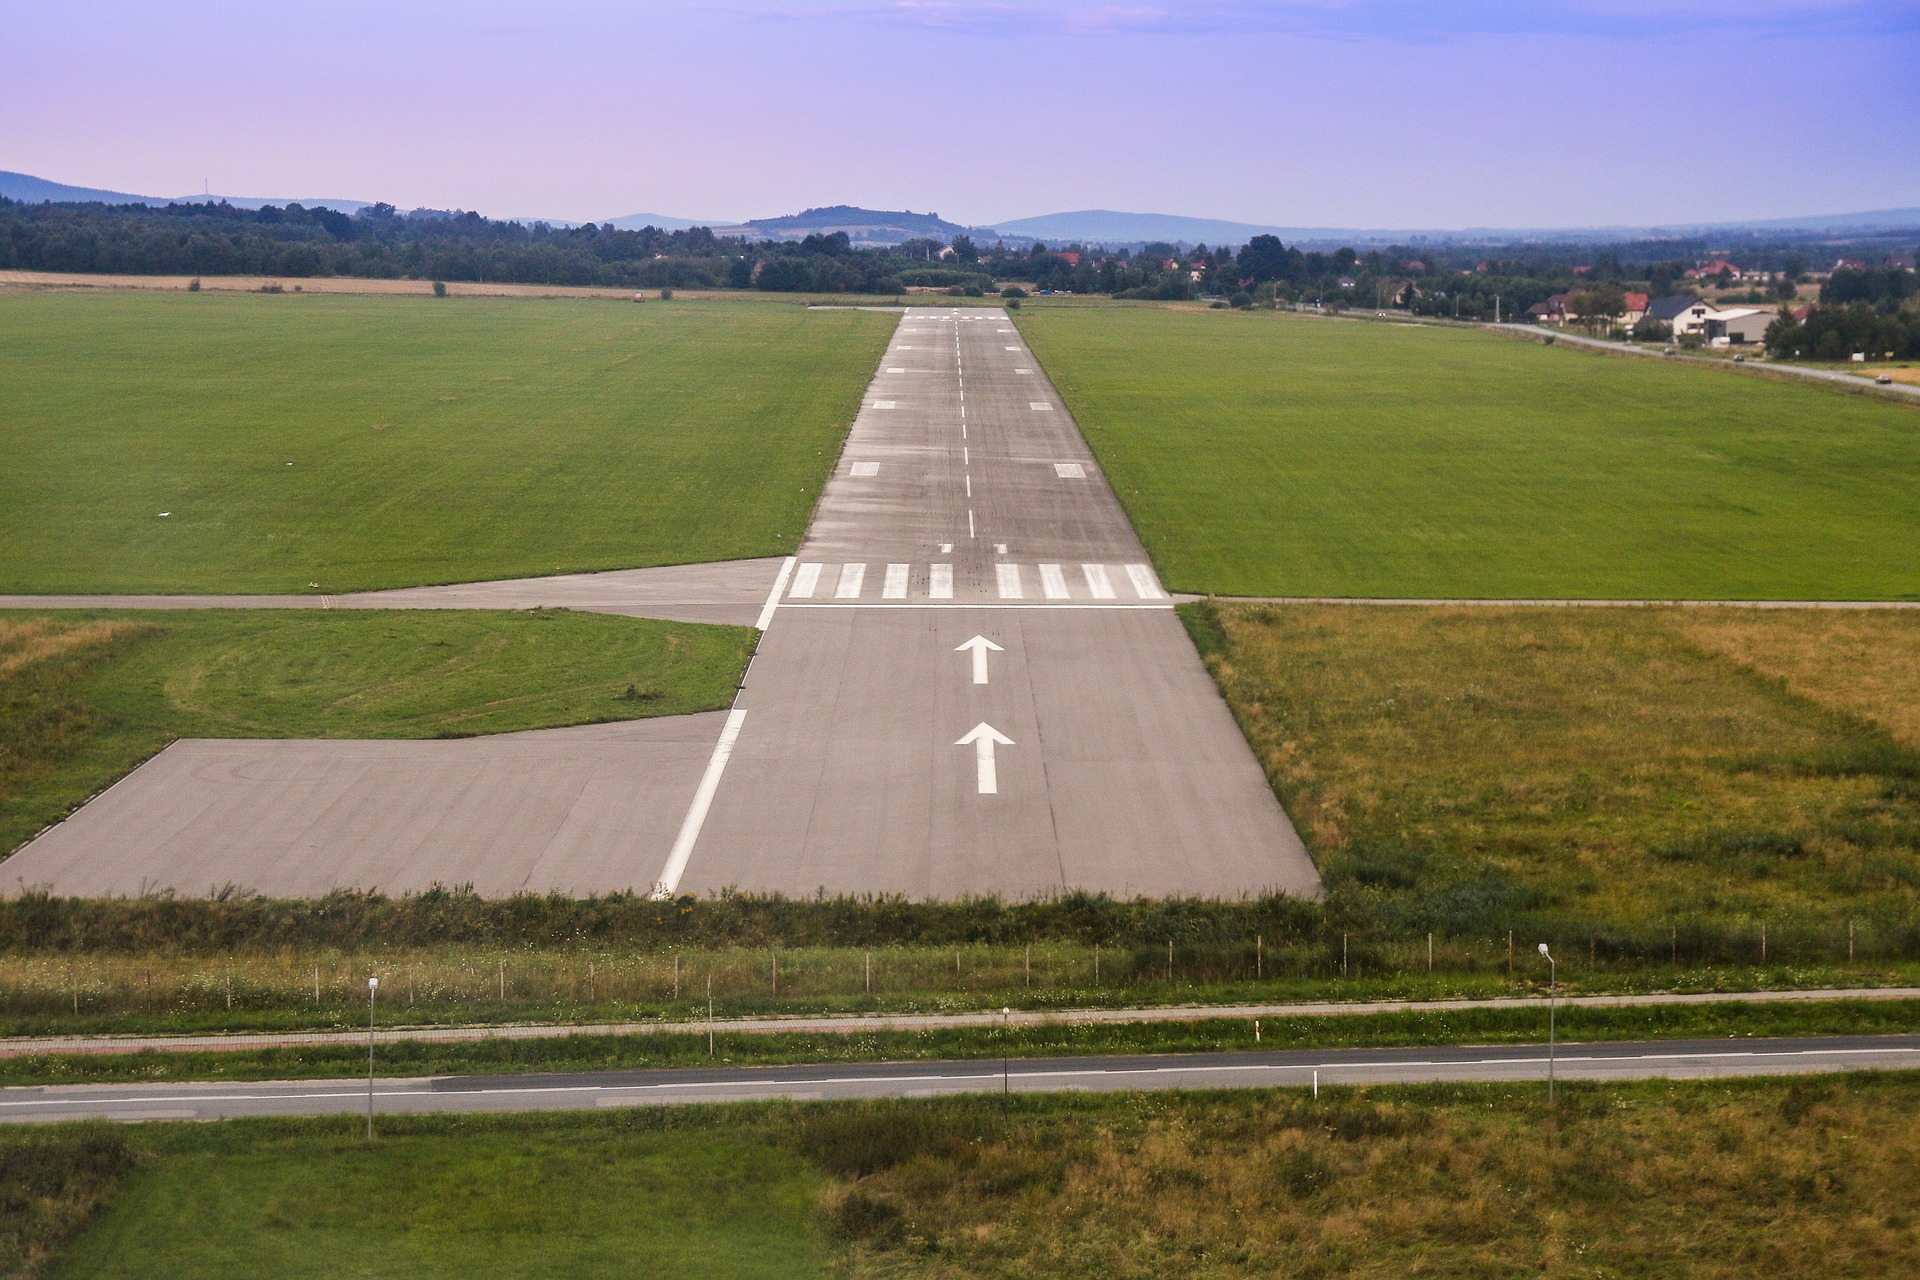 A small-airport runway in a rural mountain town